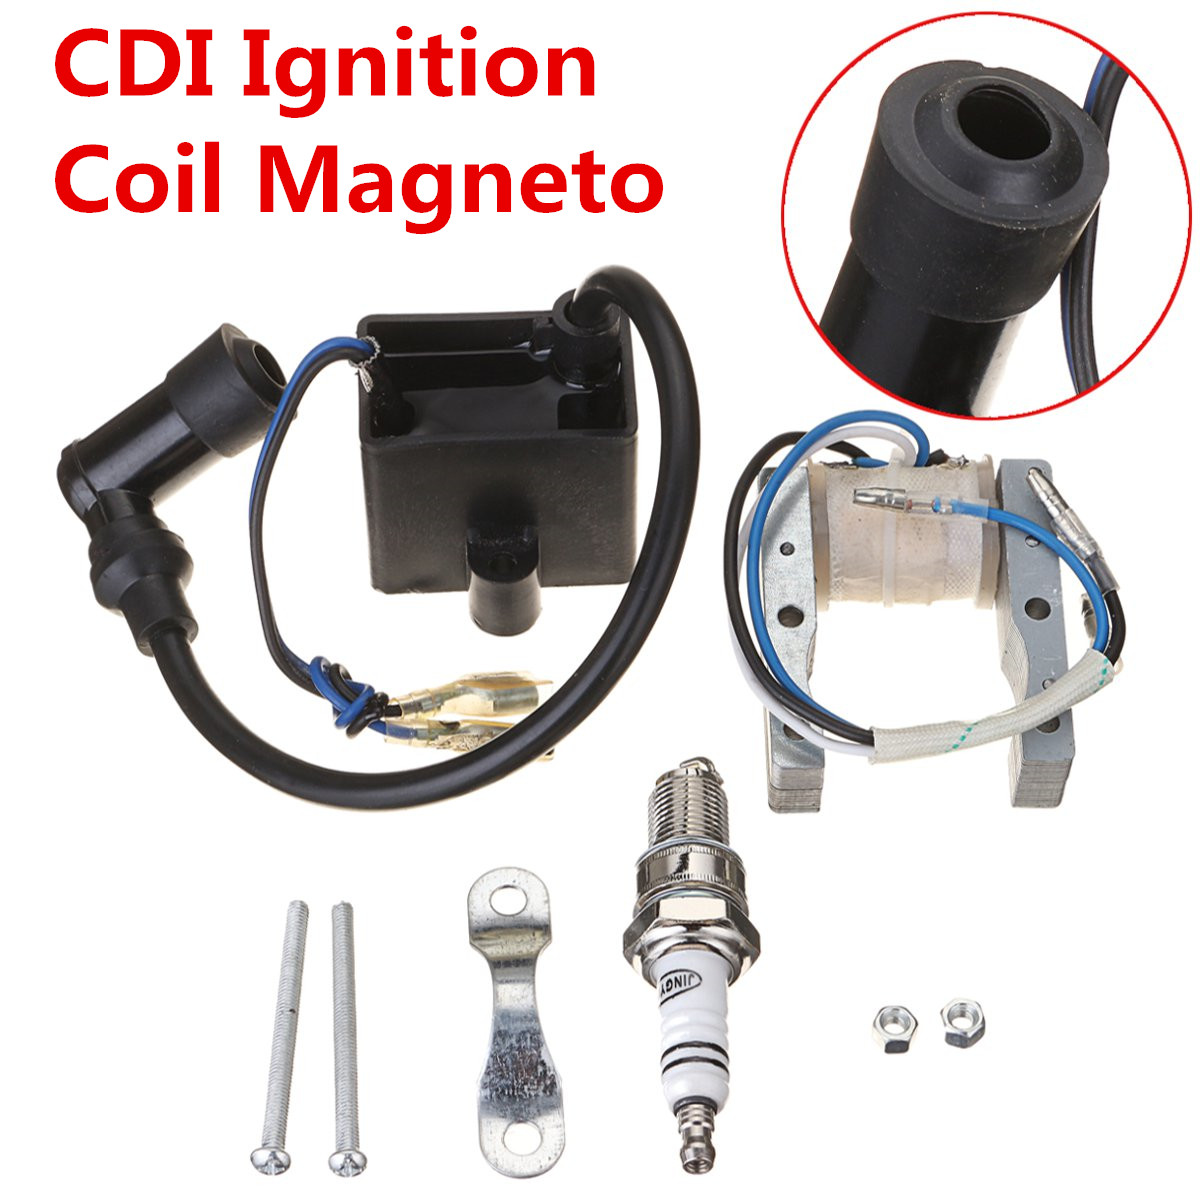 Other Engine - CDI Ignition Coil Magneto For Motorized 49cc